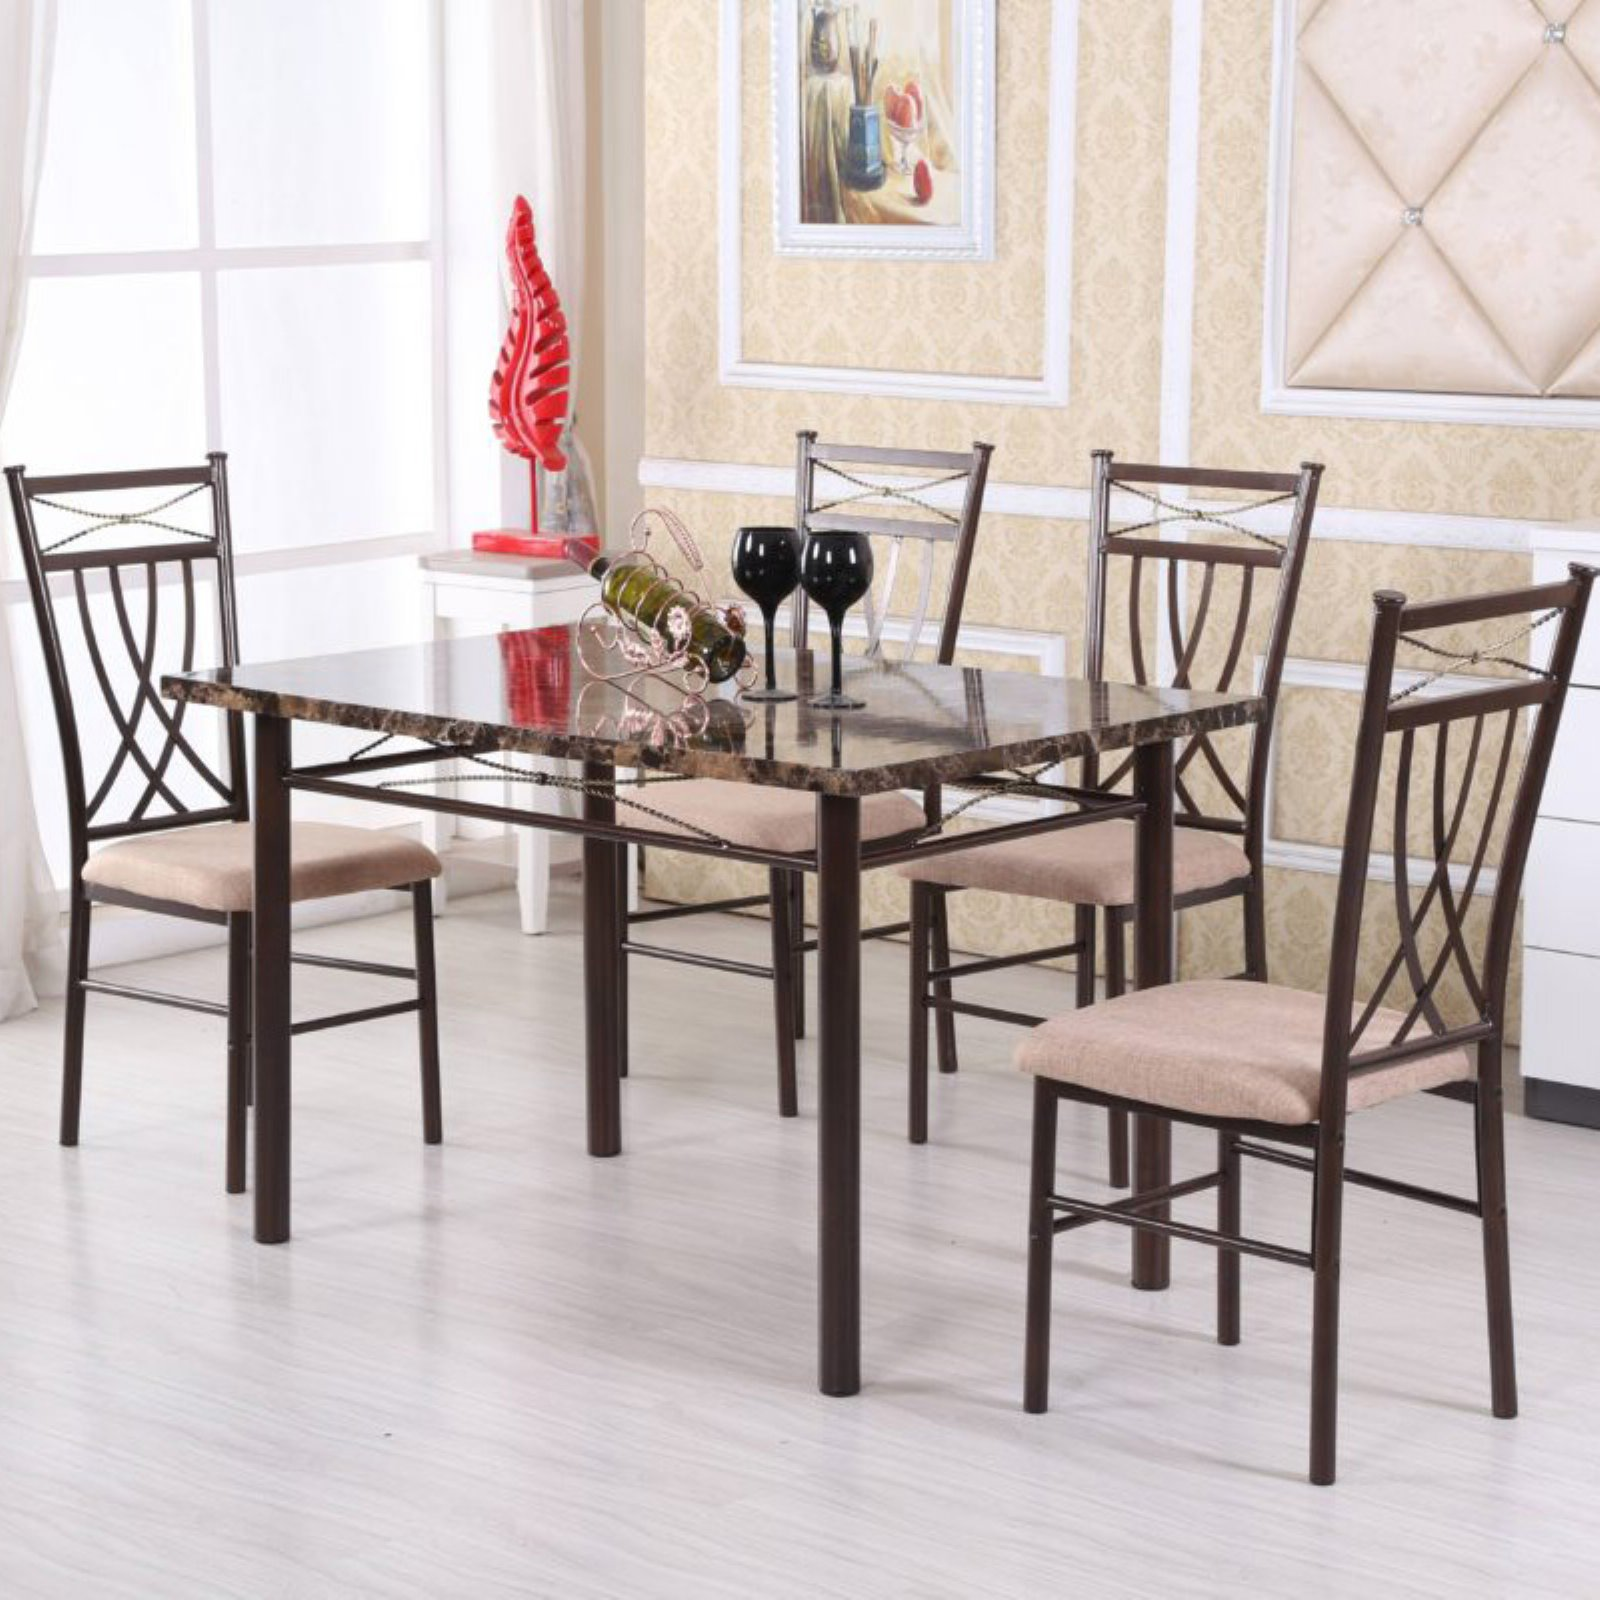 Hodedah Imports 5 Piece Dining Table Set